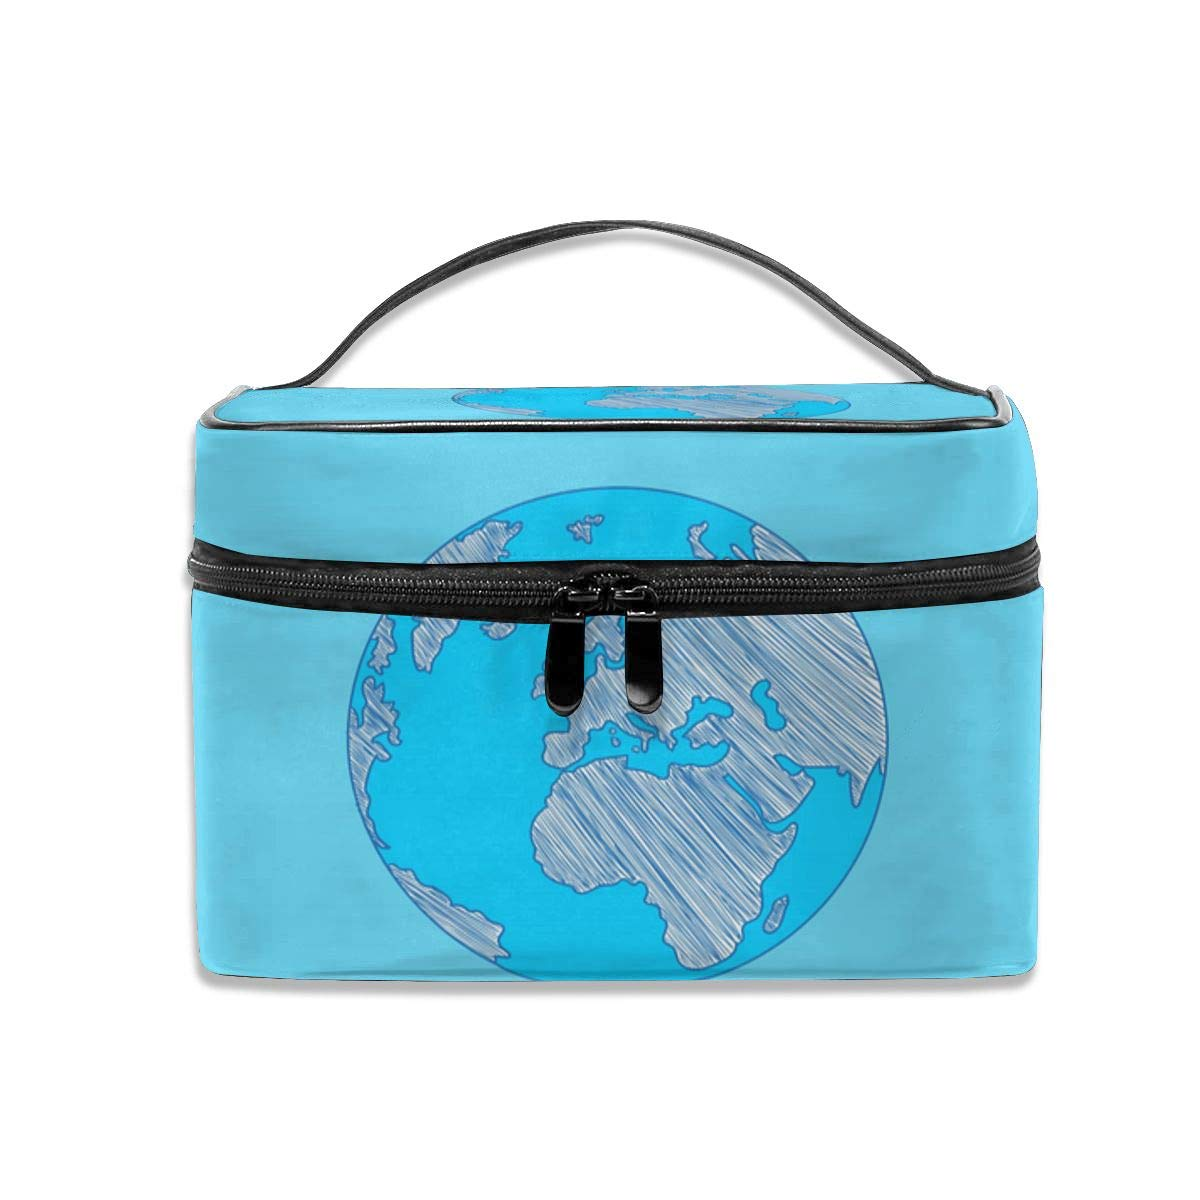 Travel Cosmetic Bag Blue EarthToietry Makeup Bag Pouch Tote Case Organizer Storage For Women Girls